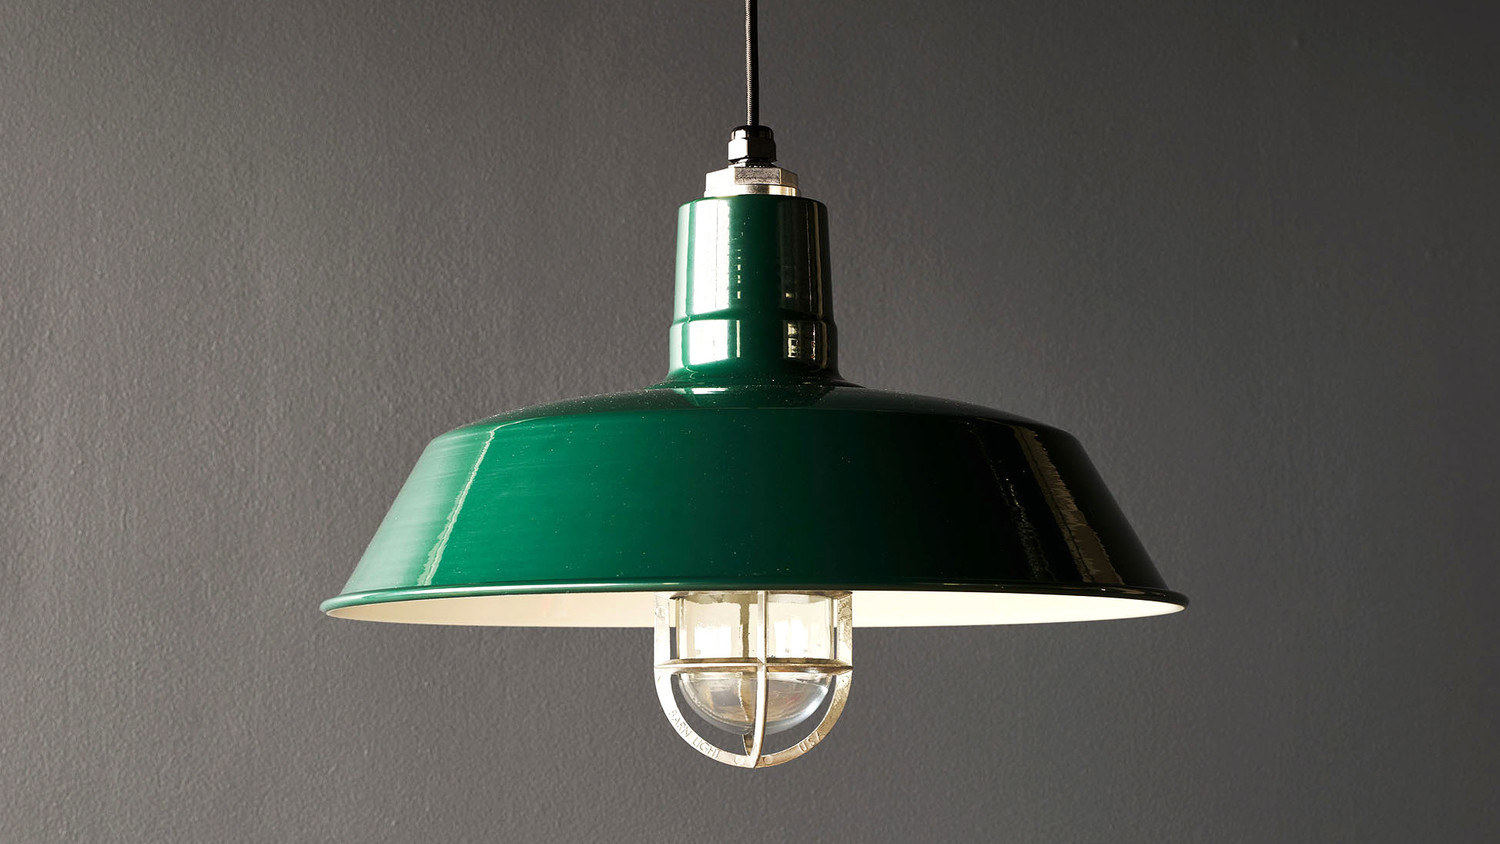 Don't Miss This Deal: Fennia 1-Light Single Cylinder Pendant within Fennia 1-Light Single Cylinder Pendants (Image 8 of 30)